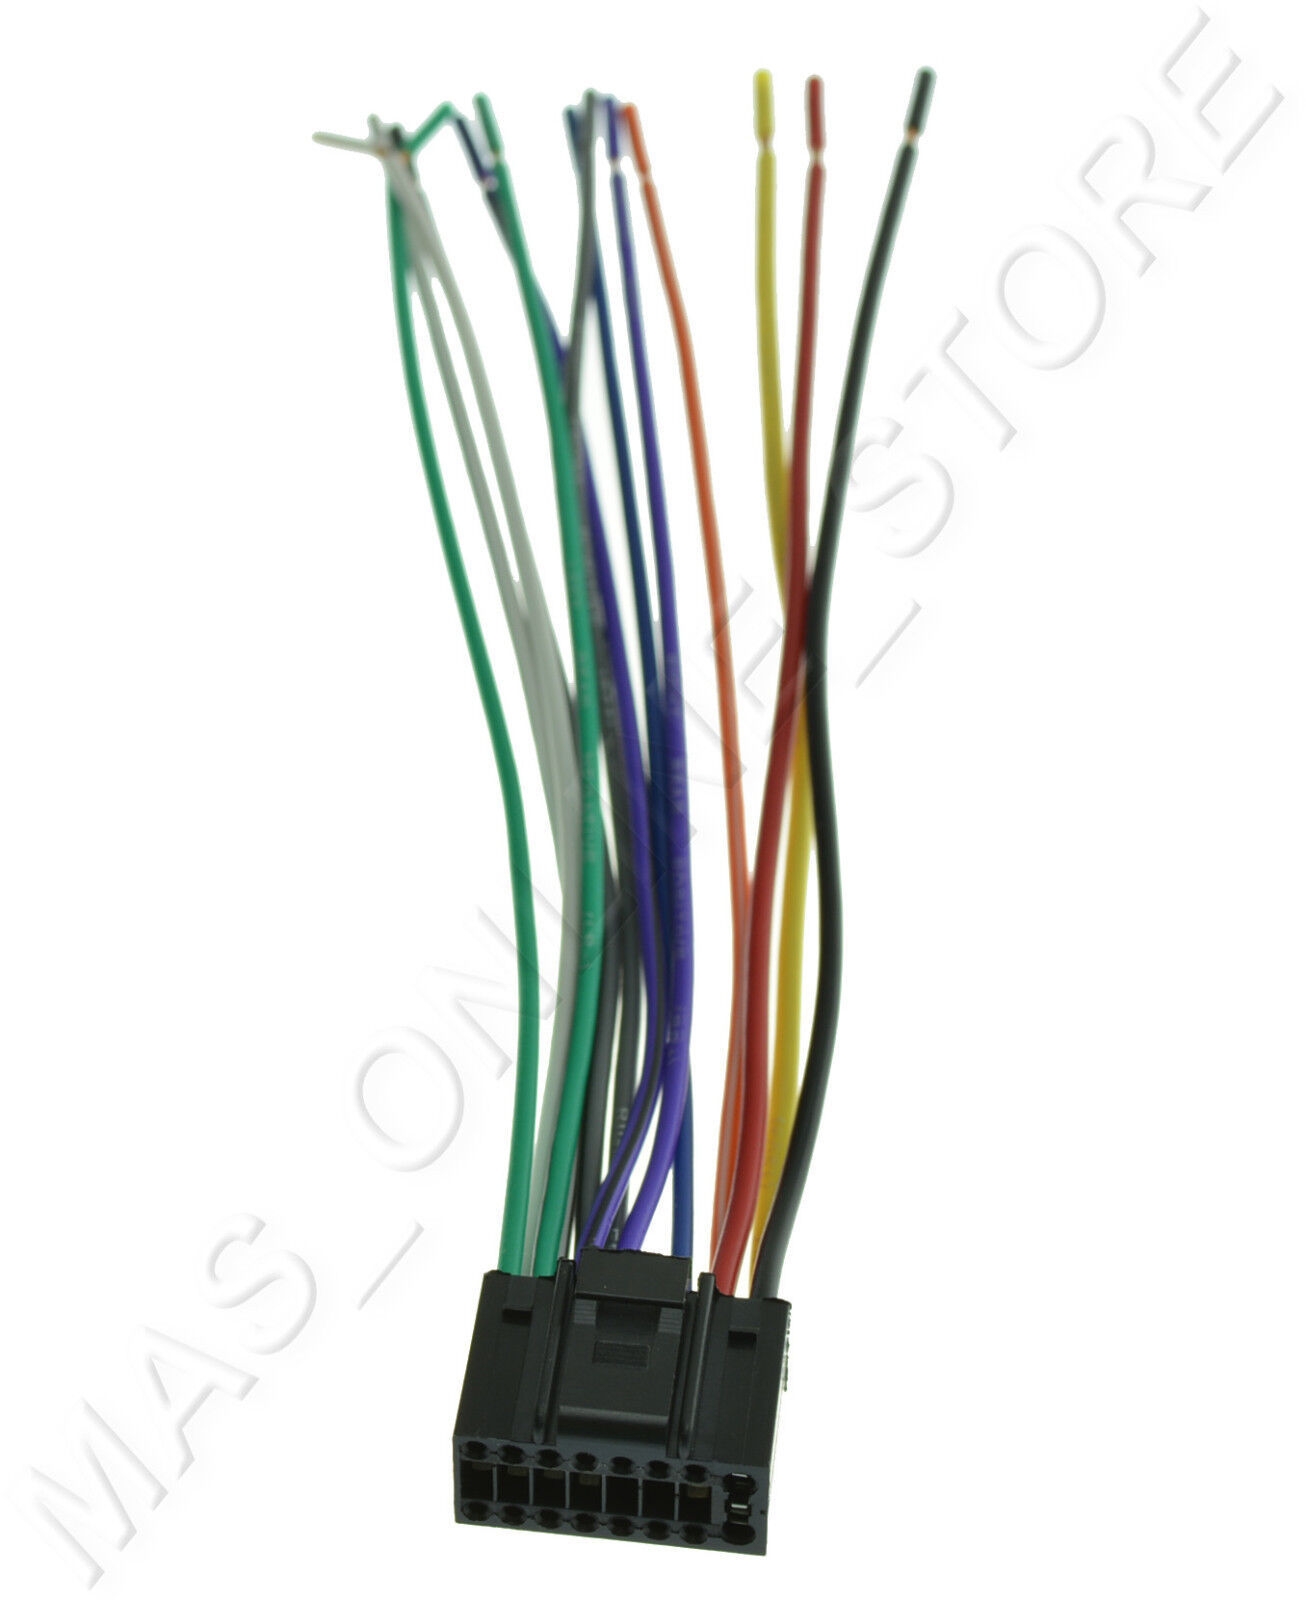 Wire Harness For Jvc Kd S38 Kds38 pay Today jvc kd r326 wiring diagram jvc kd r326 wiring diagram \u2022 free Radio Wiring Harness Diagram at suagrazia.org